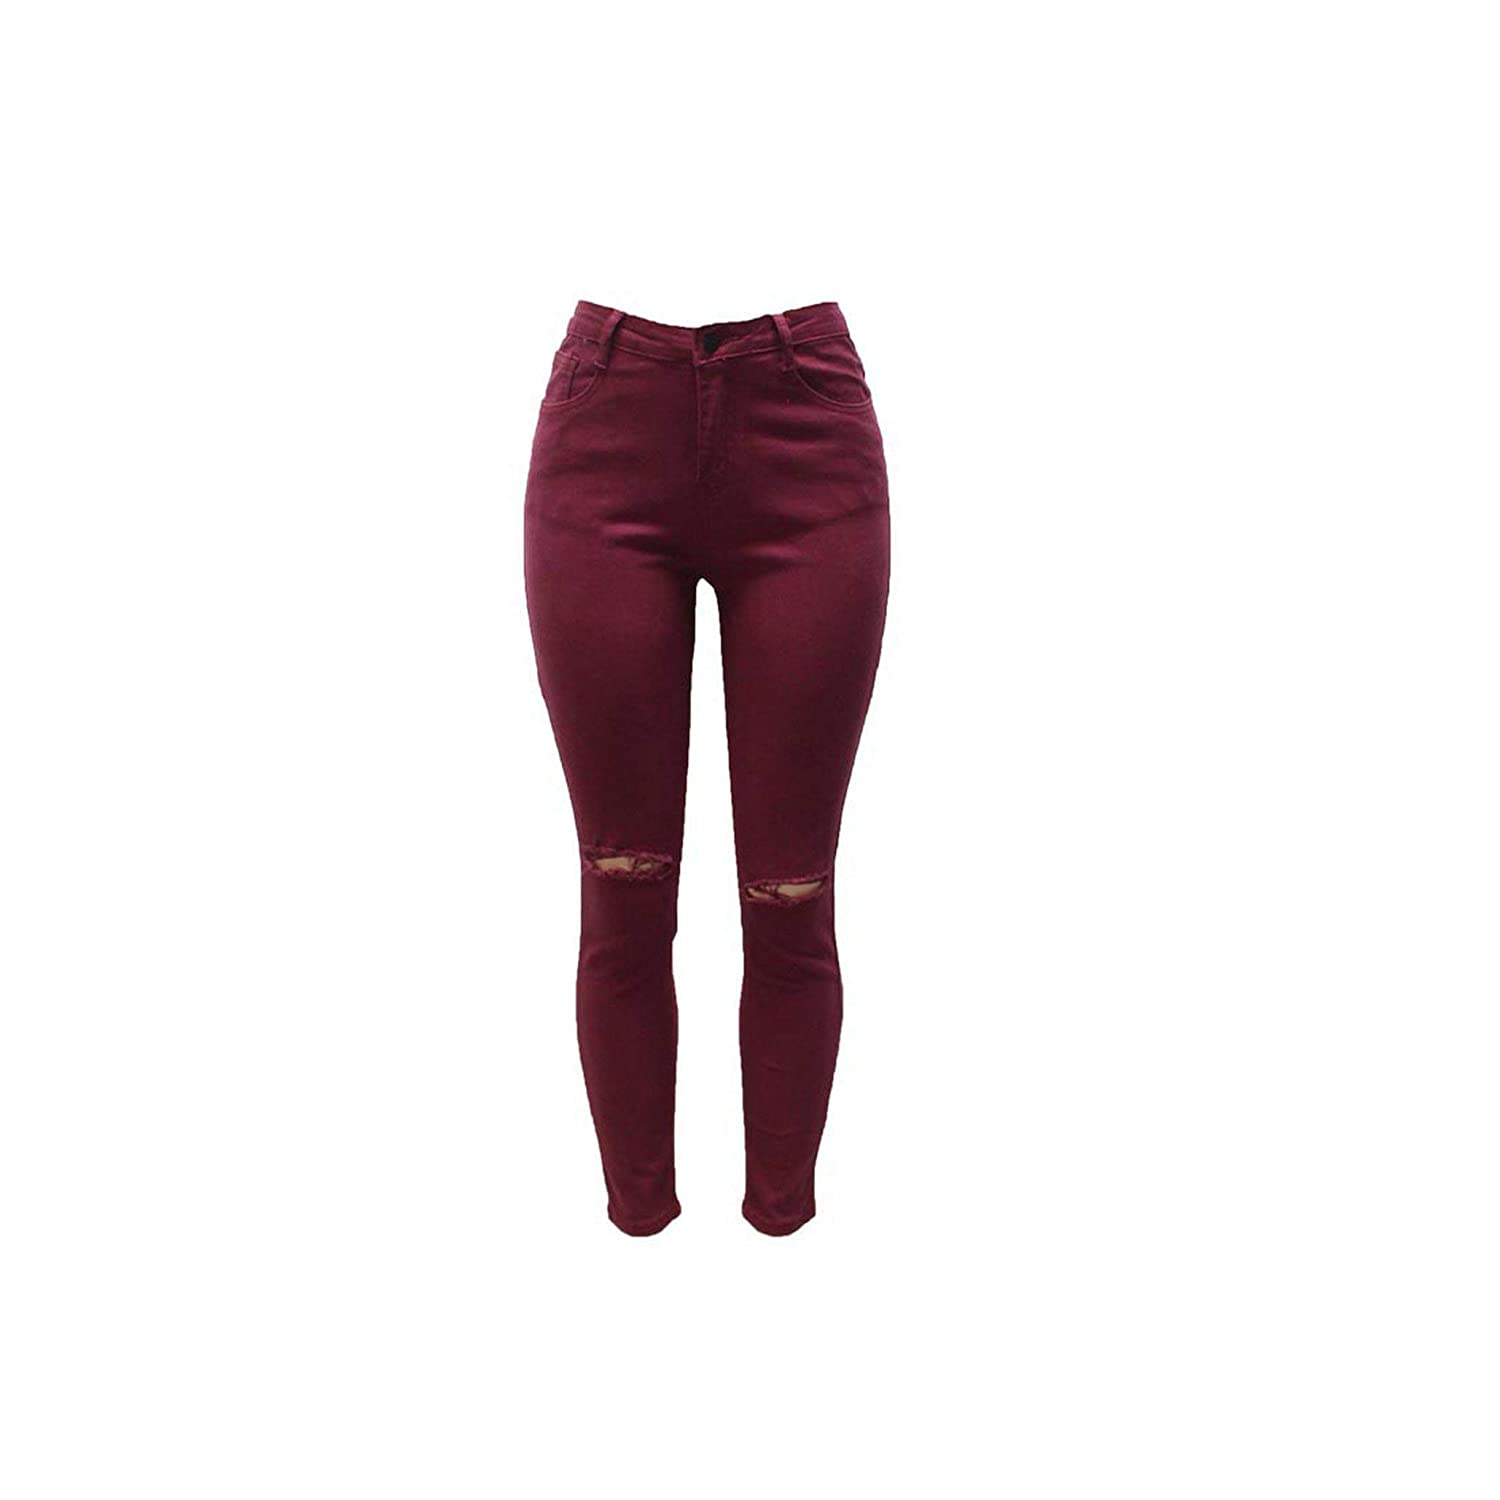 Wine red jeans woman Femme High Waisted Skinny Jeans Woman Sexy Hip Lift Women Cotton Broken Hole Jeans